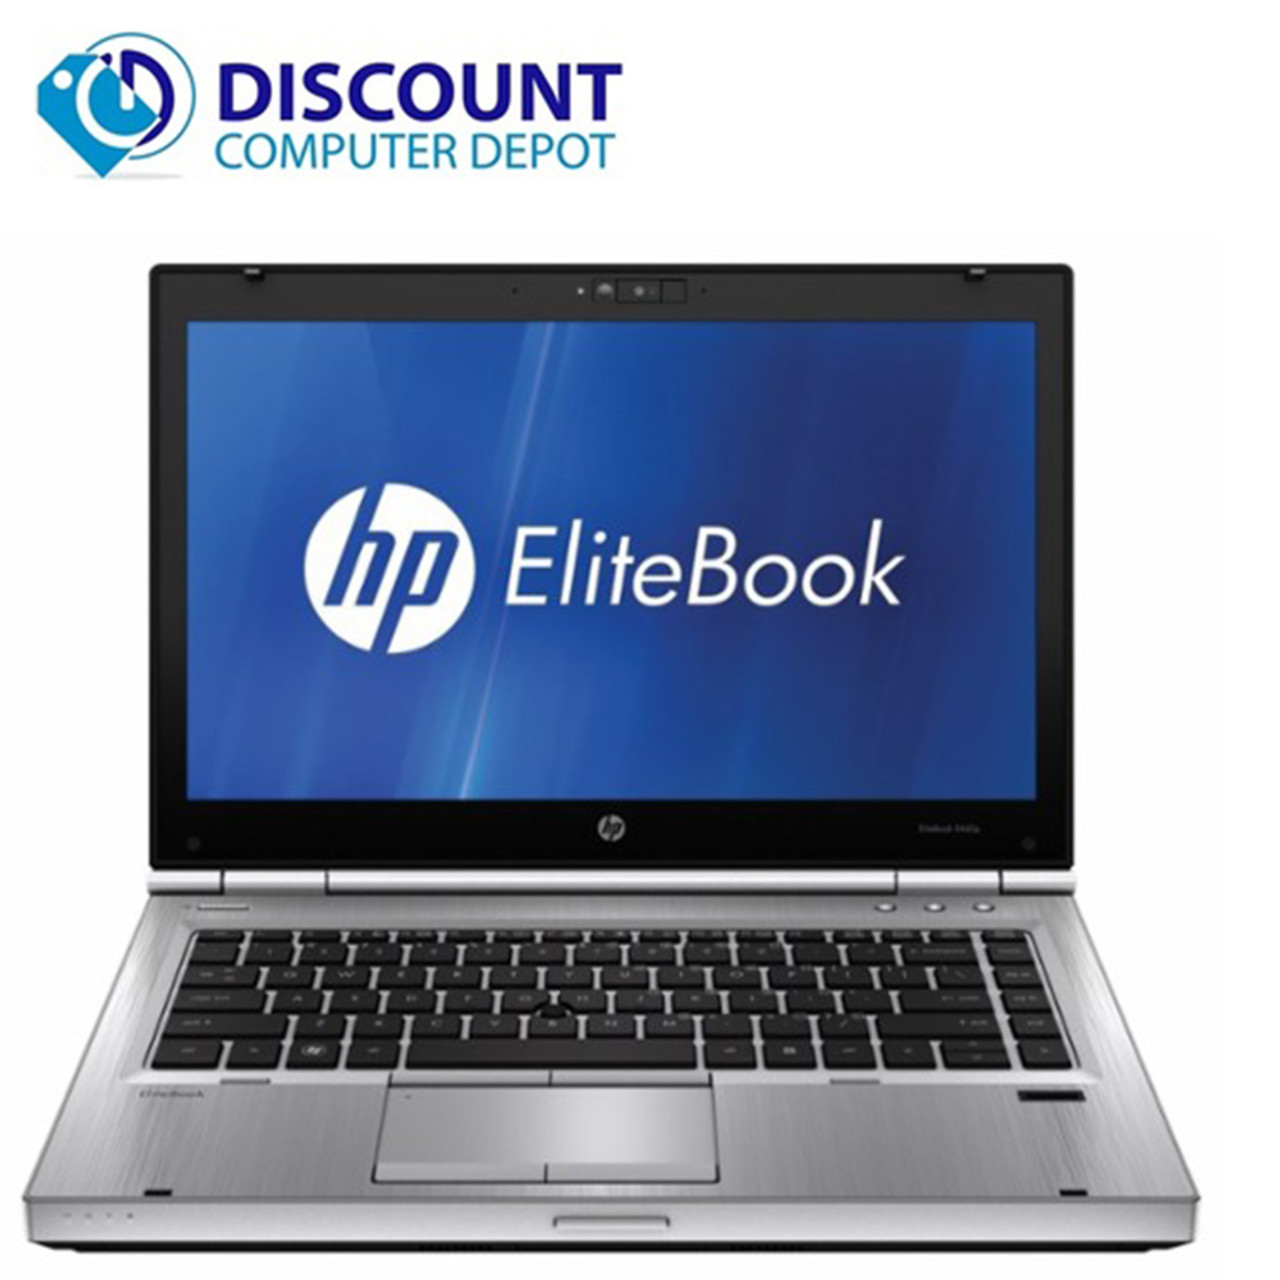 HP Elitebook 8470p Windows 10 Pro Laptop Notebook PC i7 Quad